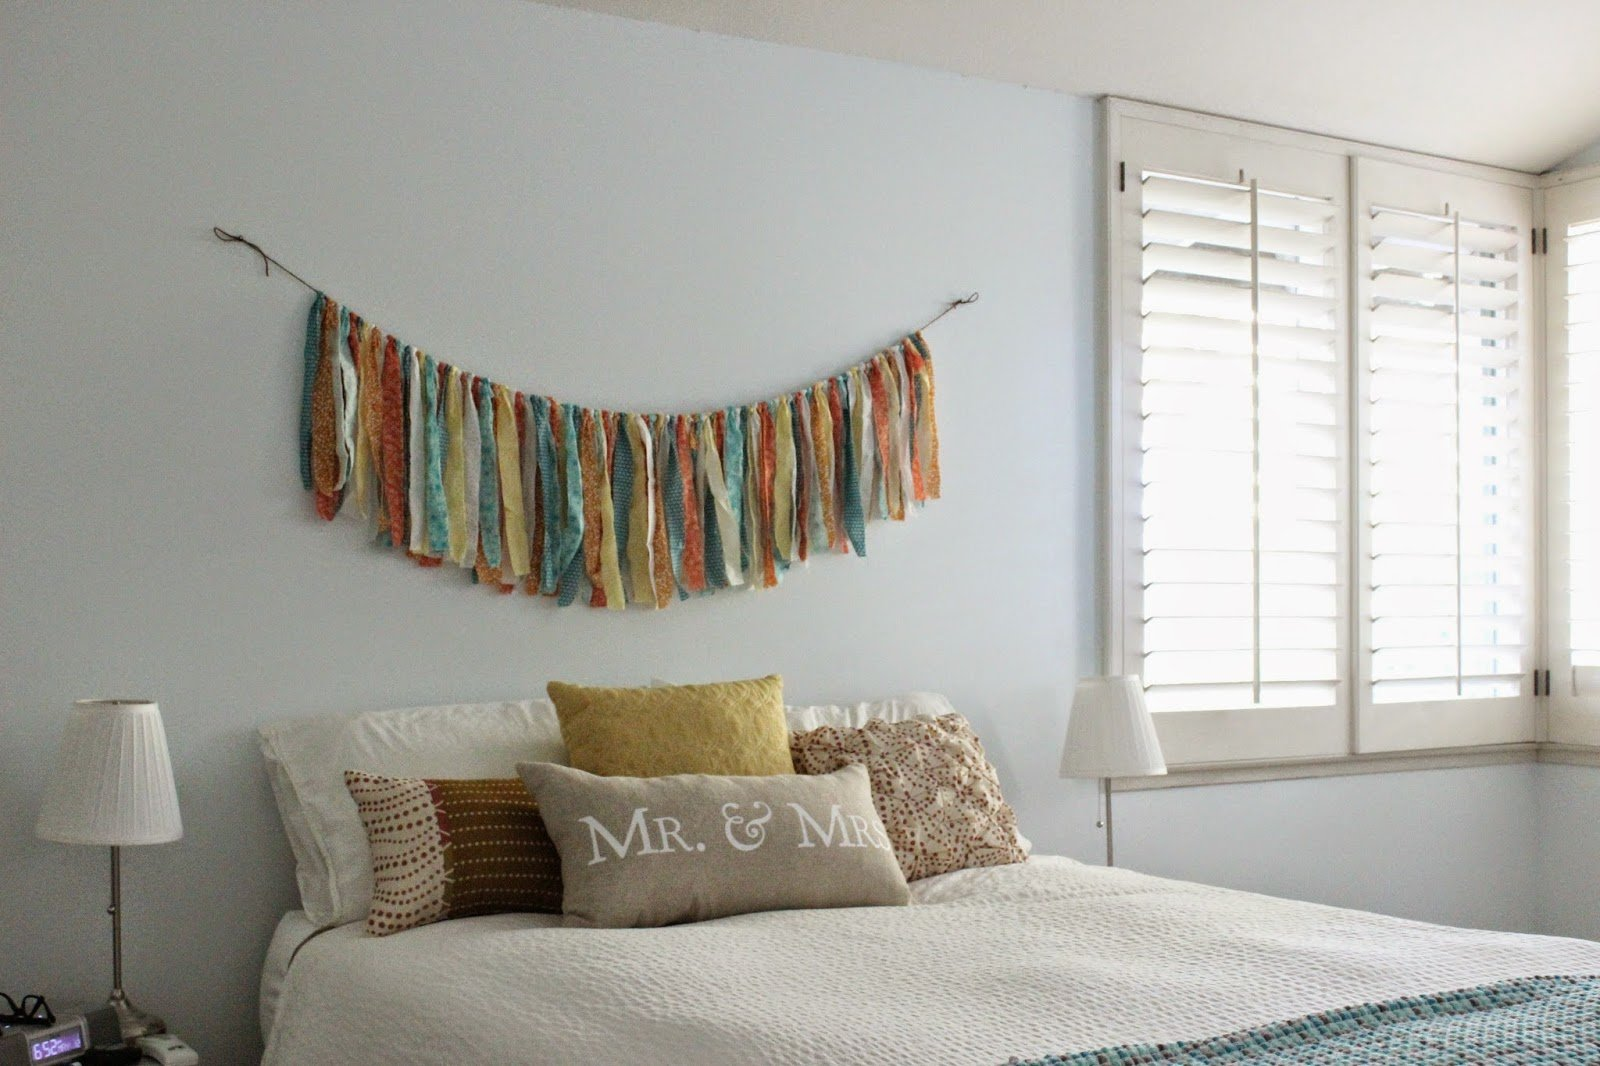 Best Changs And Changes Bedroom Fabric Garland Diy With Pictures